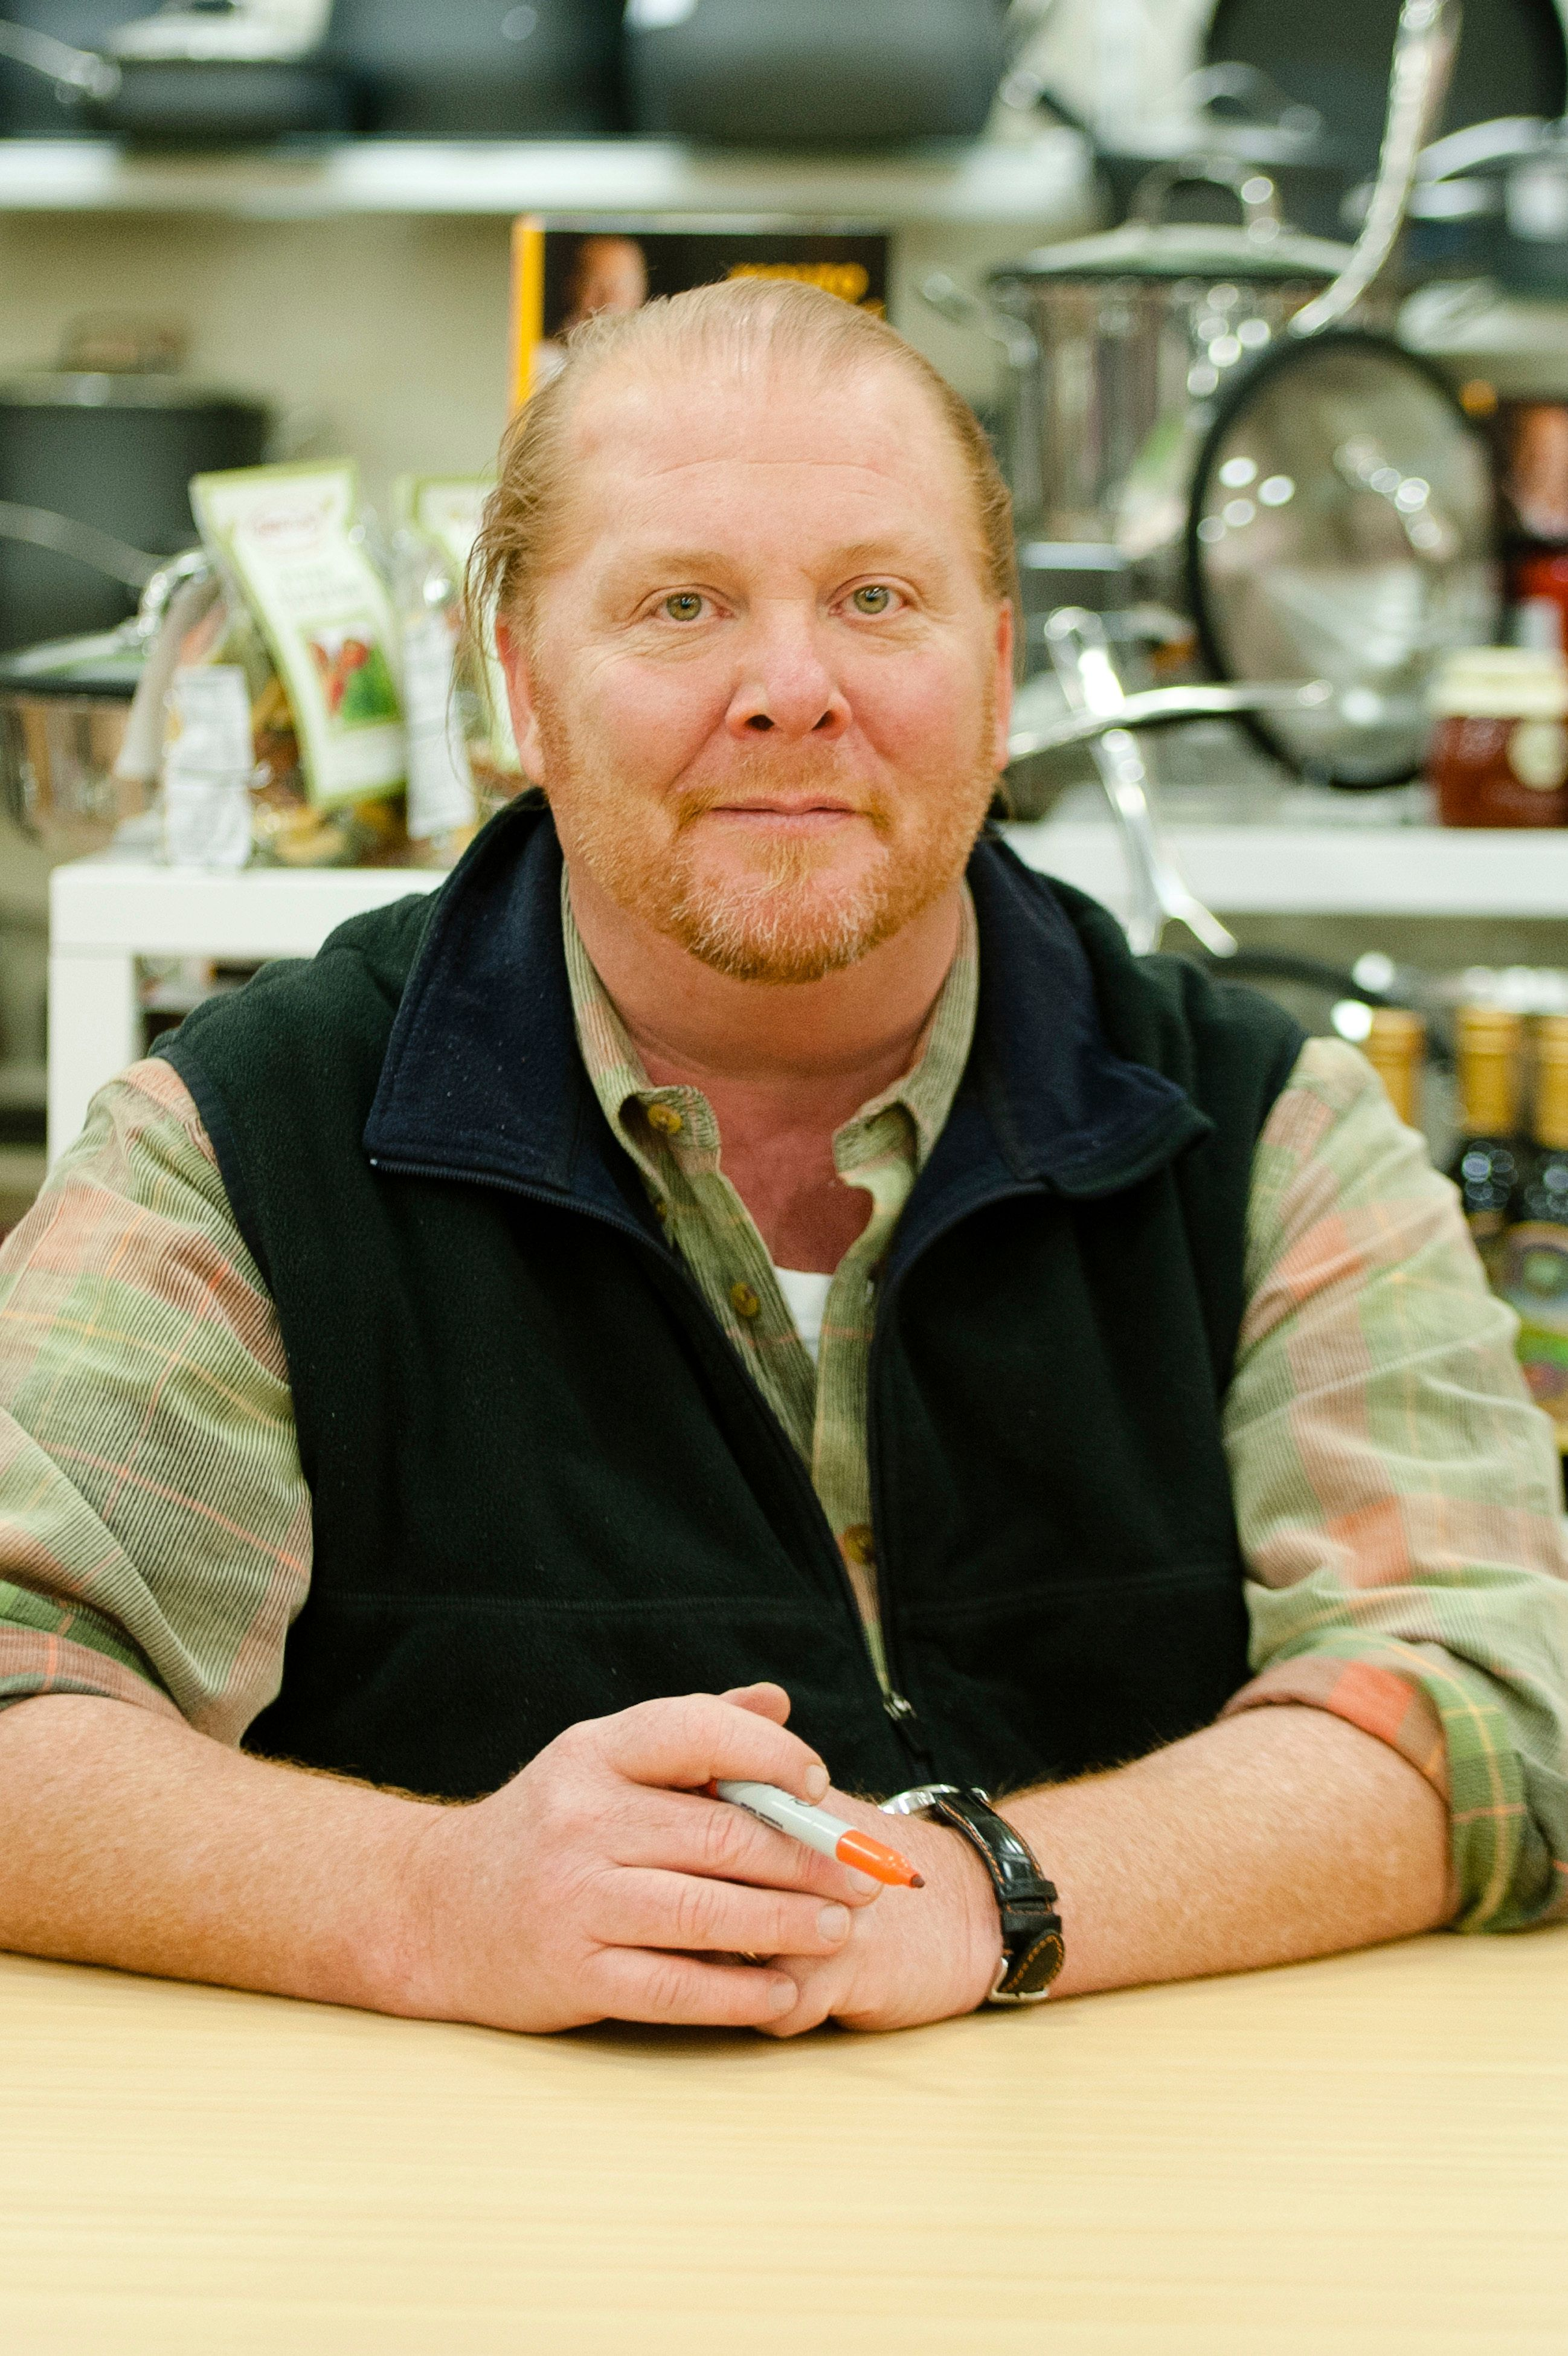 Mario Batali promotes his cookbook, Molto Batali Simple Family Meals at HomeGoods in New York City. January 19, 2012. © Kristen Driscoll / Mediapunch Inc. /IPX